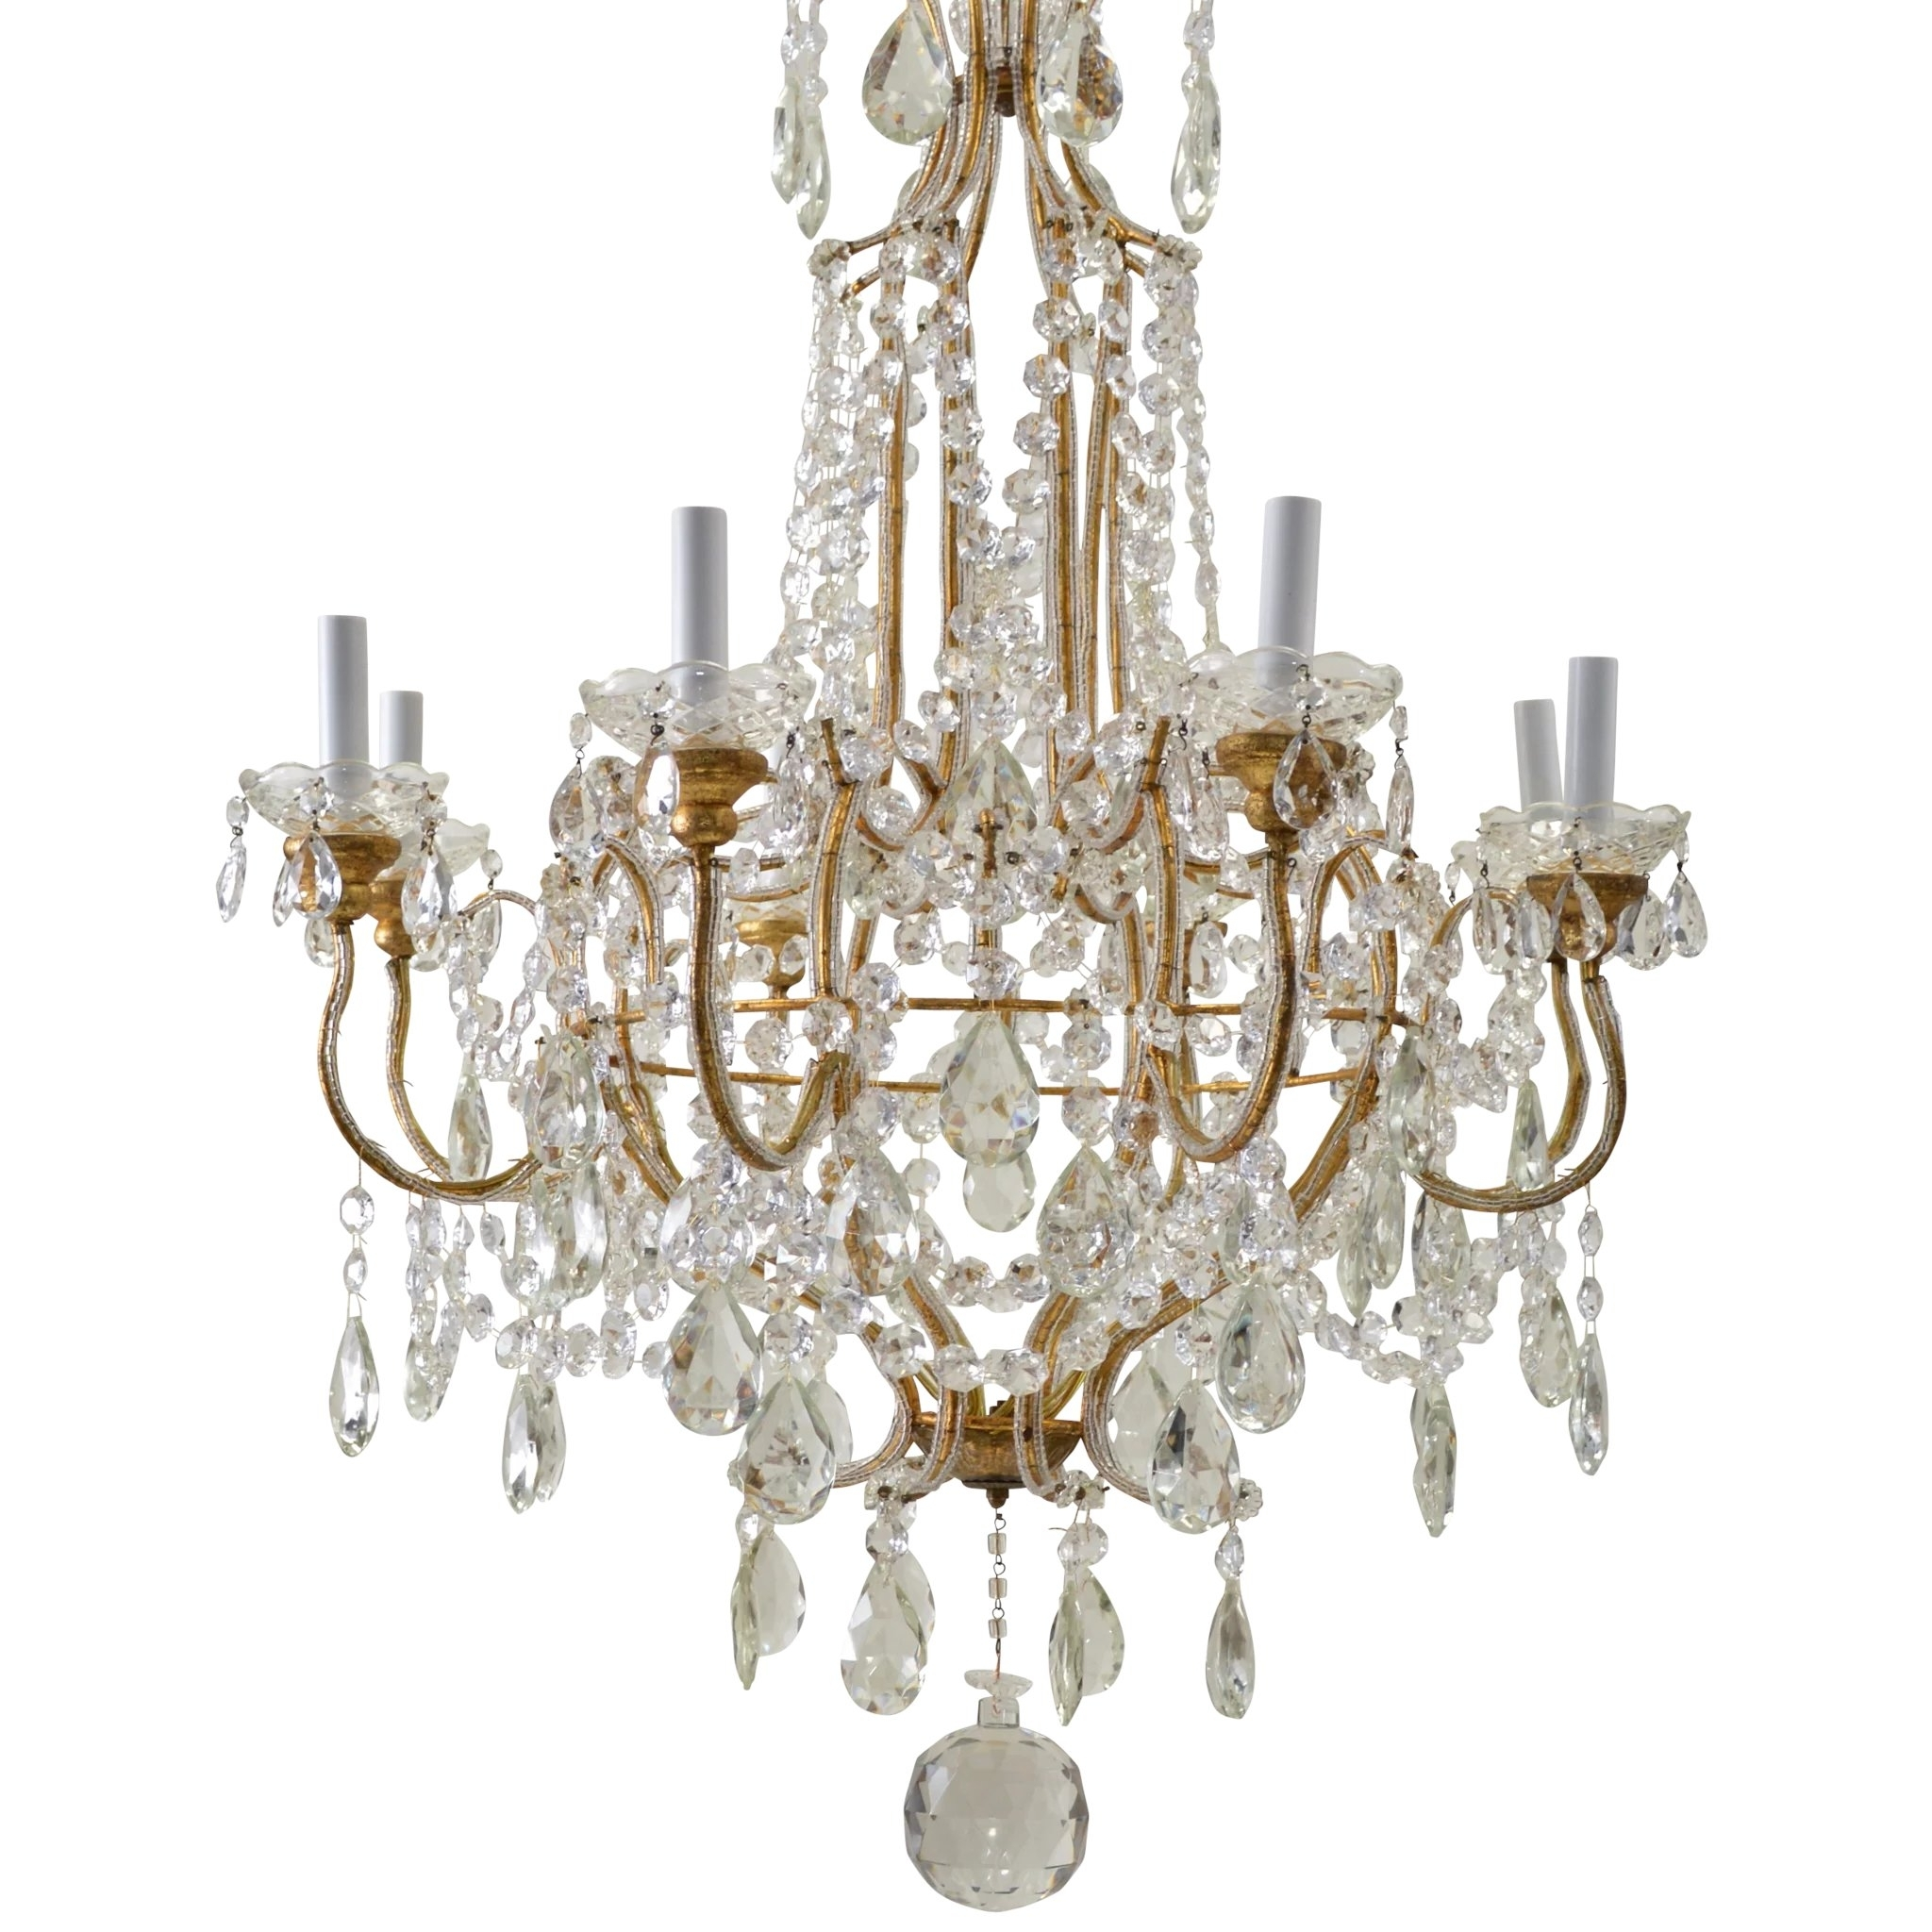 Vintage Italian Gilded Macaroni Beaded Crystal Prism Chandelier – 8 Throughout Famous Vintage Italian Chandeliers (Gallery 18 of 20)